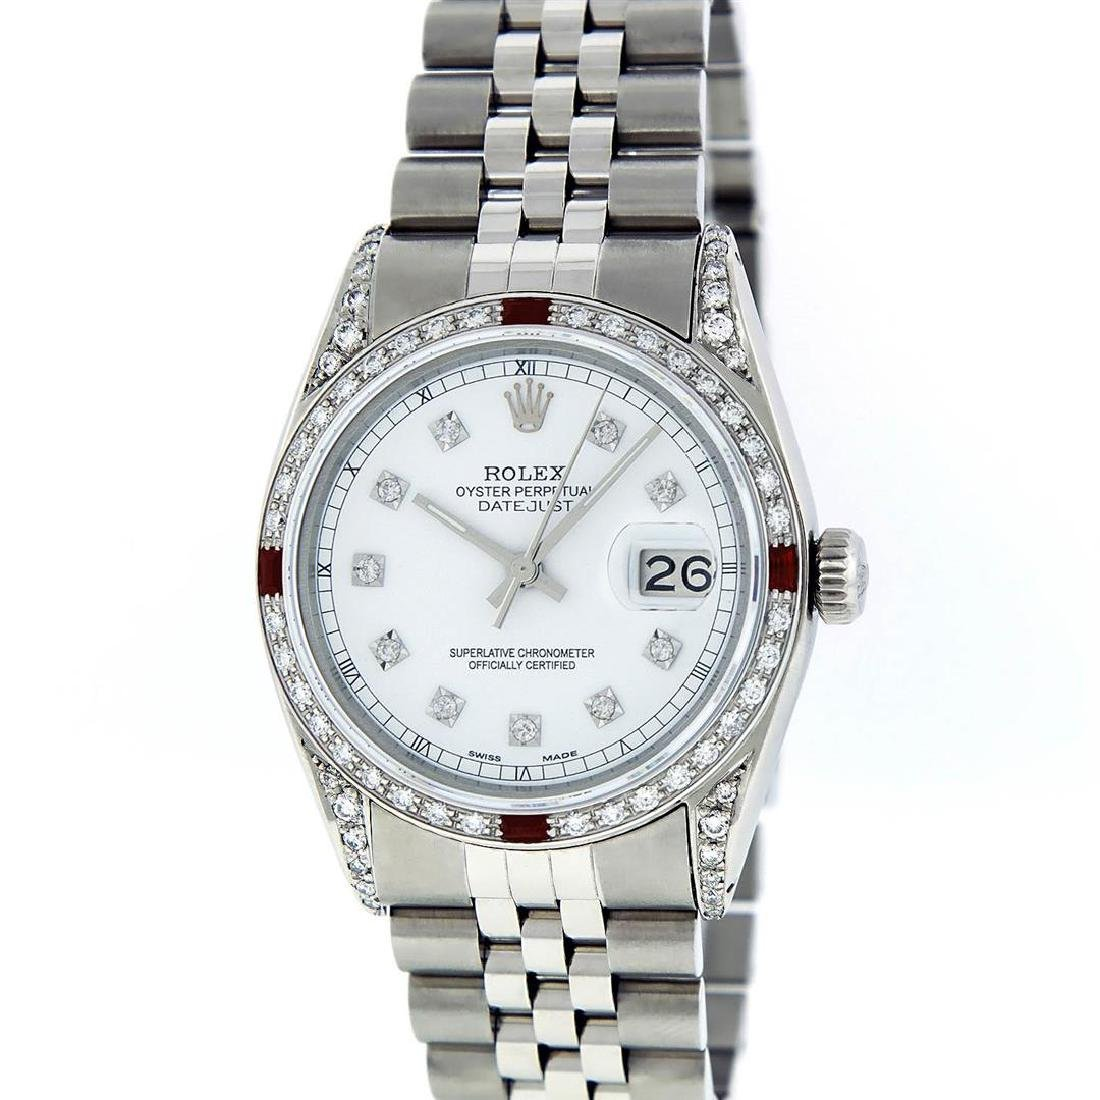 Rolex Mens Stainless Steel Diamond Lugs & Ruby Datejust - 2